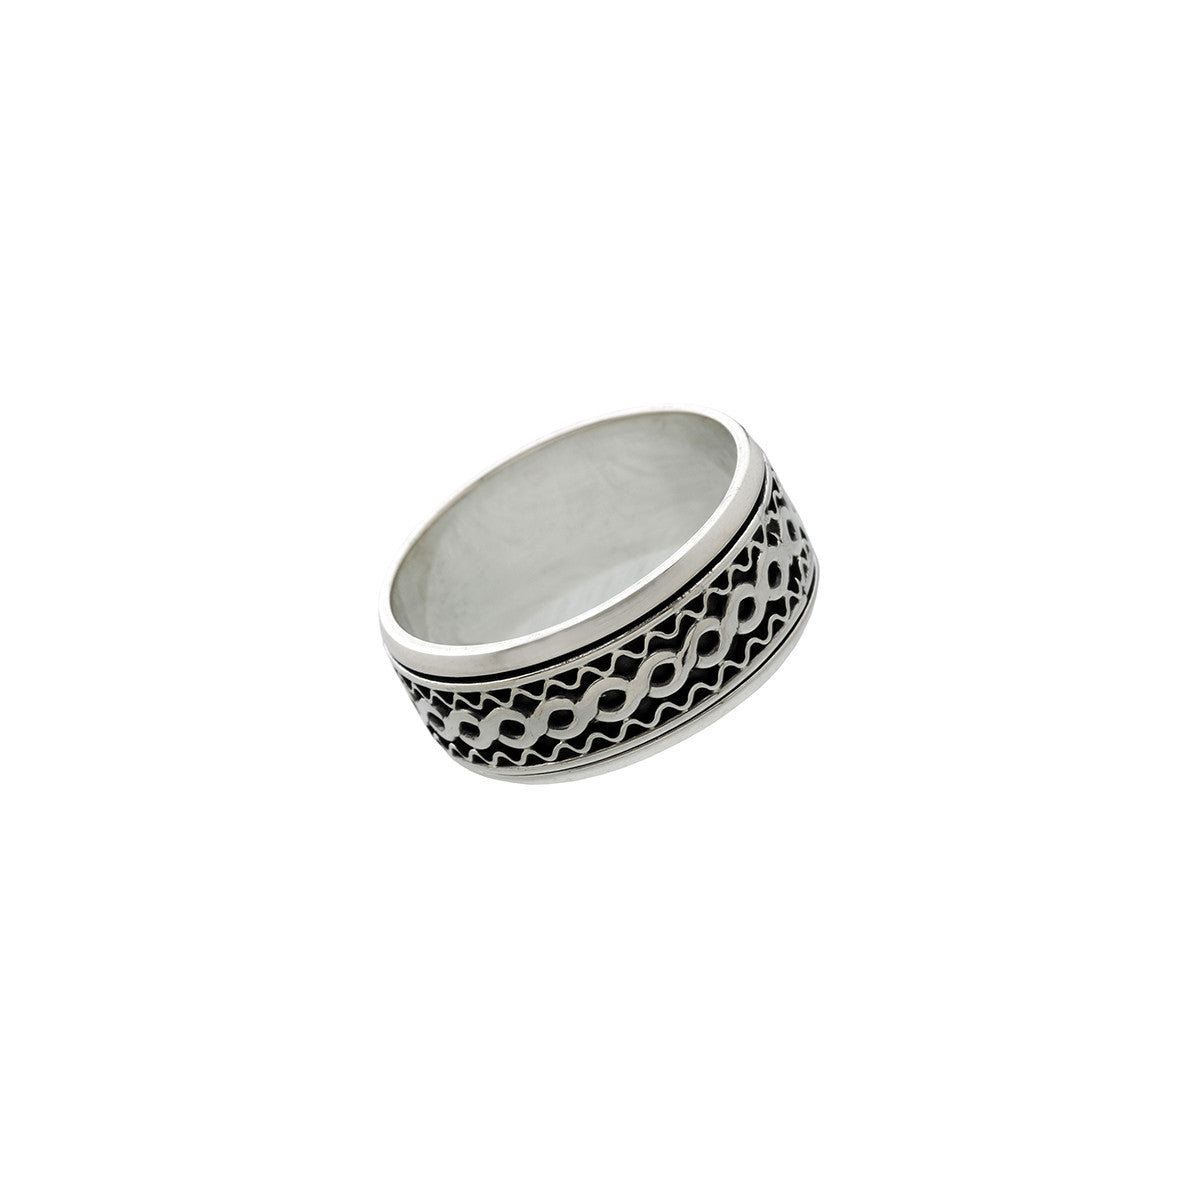 Alpha Infinity Sterling Silver Spin Ring - Cynthia Gale New York Jewelry